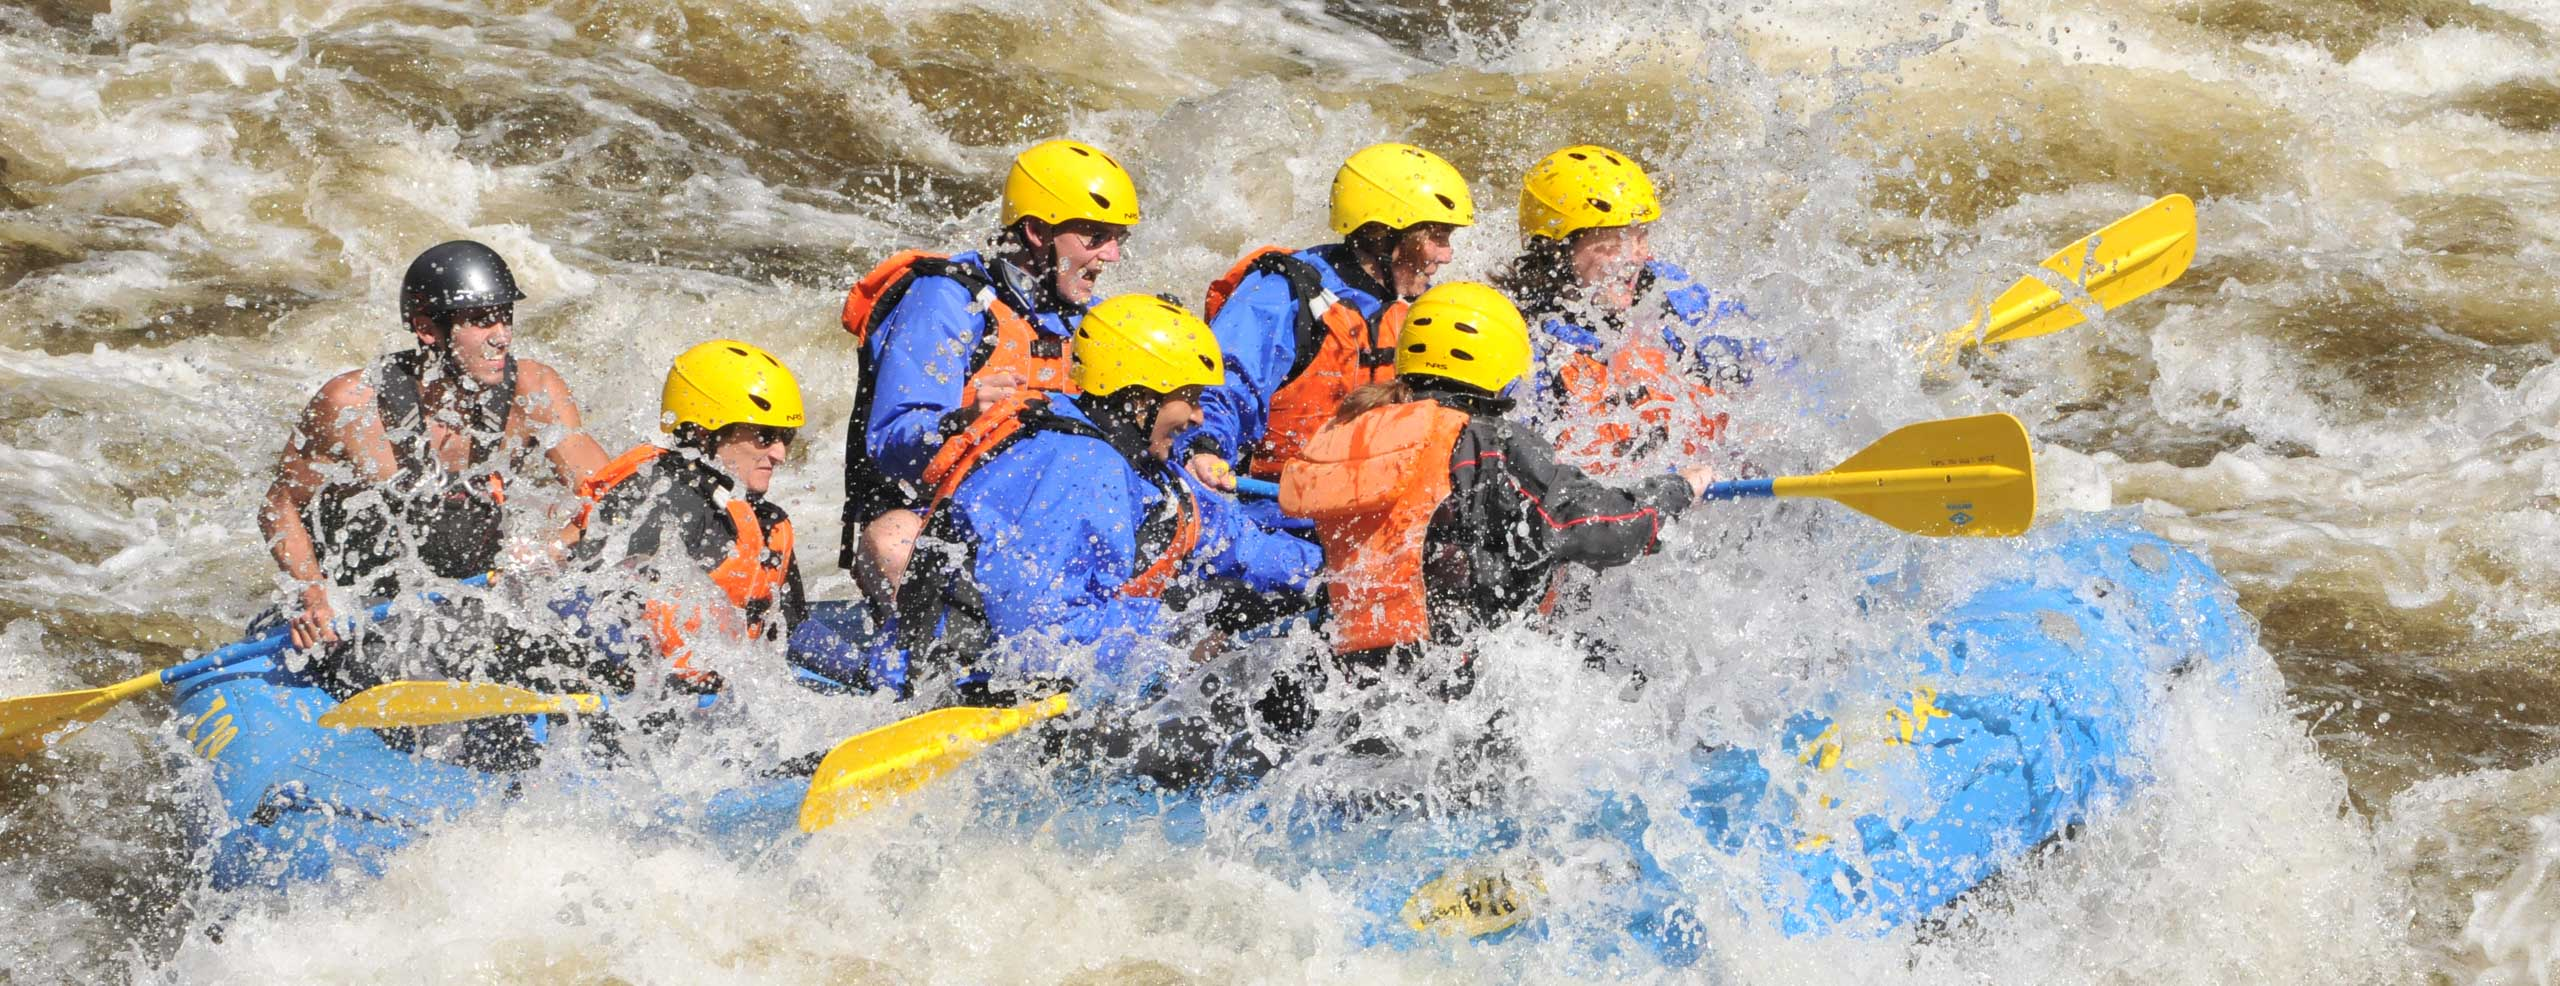 Group of rafters getting splashed and soaked by water from rapids